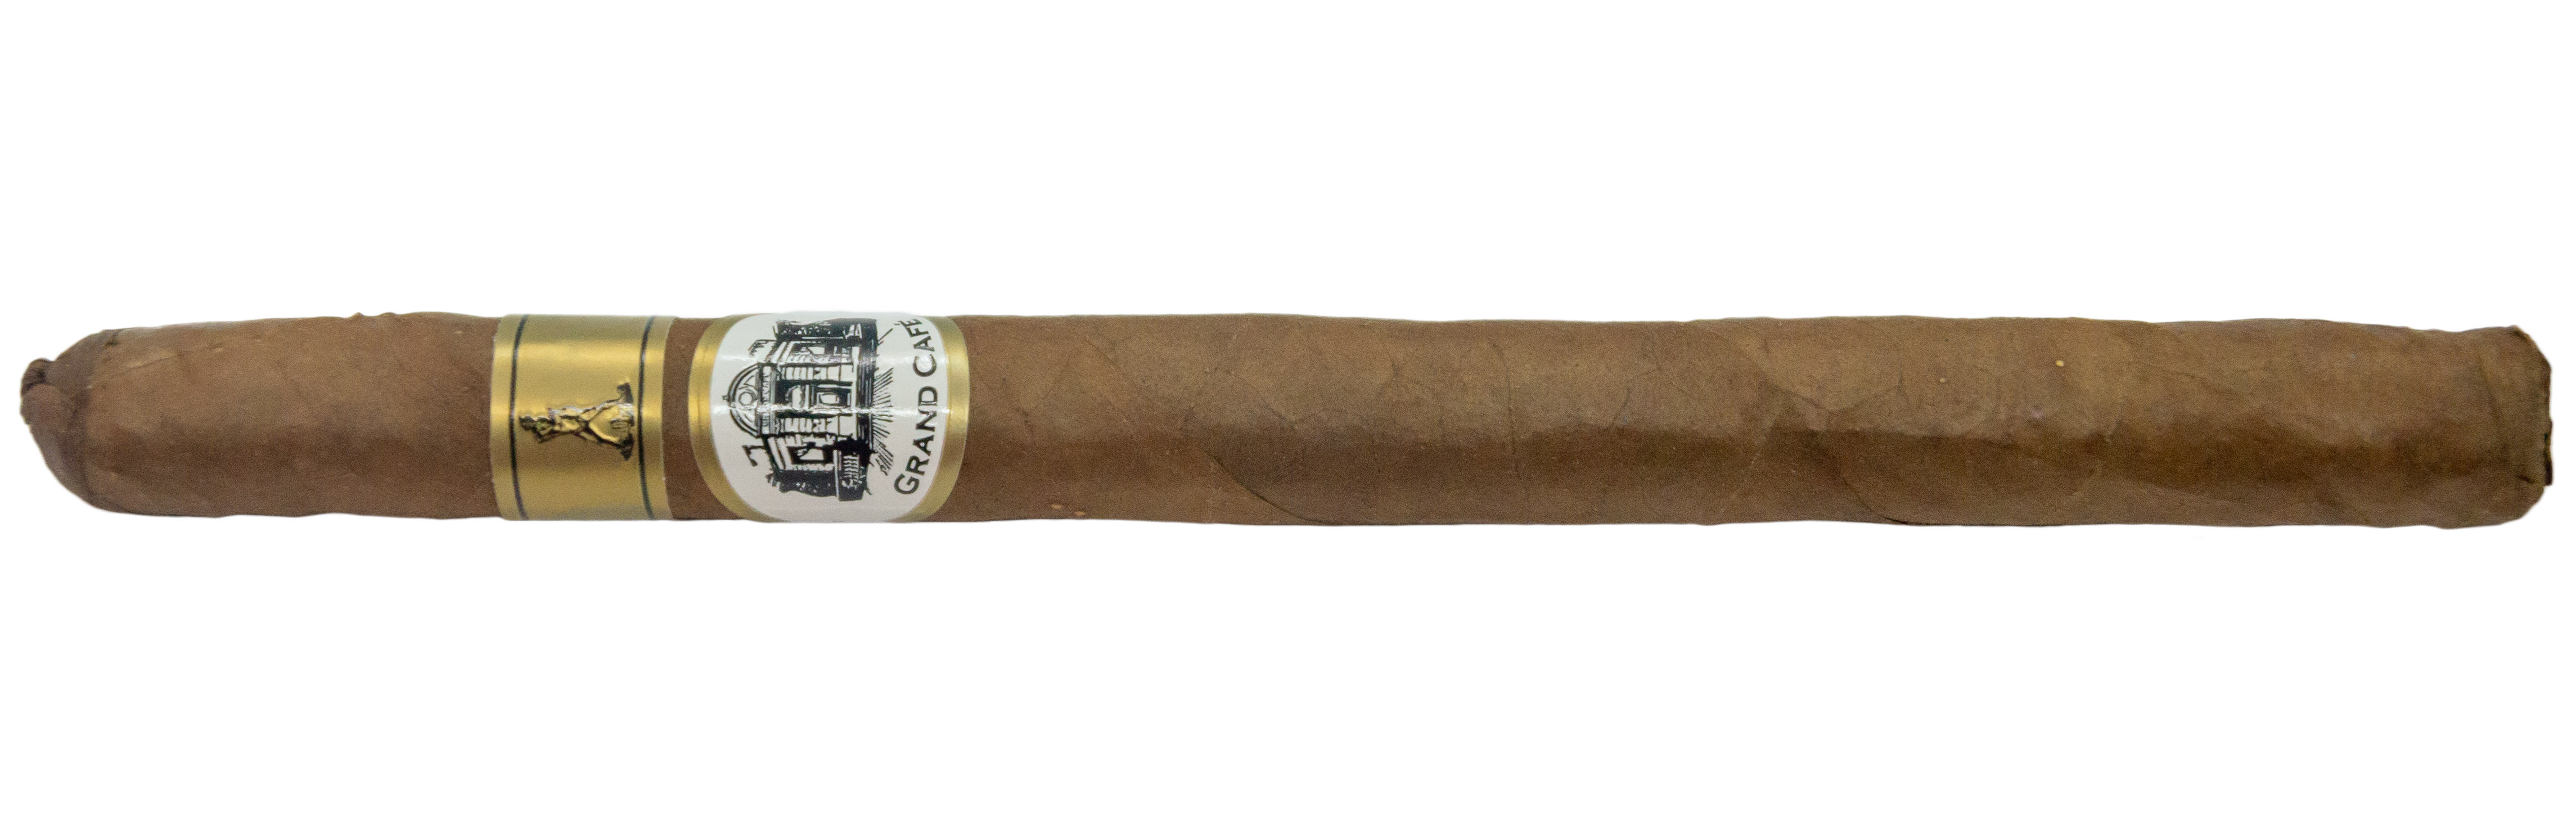 Blind Cigar Review: Bespoke | The Grand Cafe Lancero